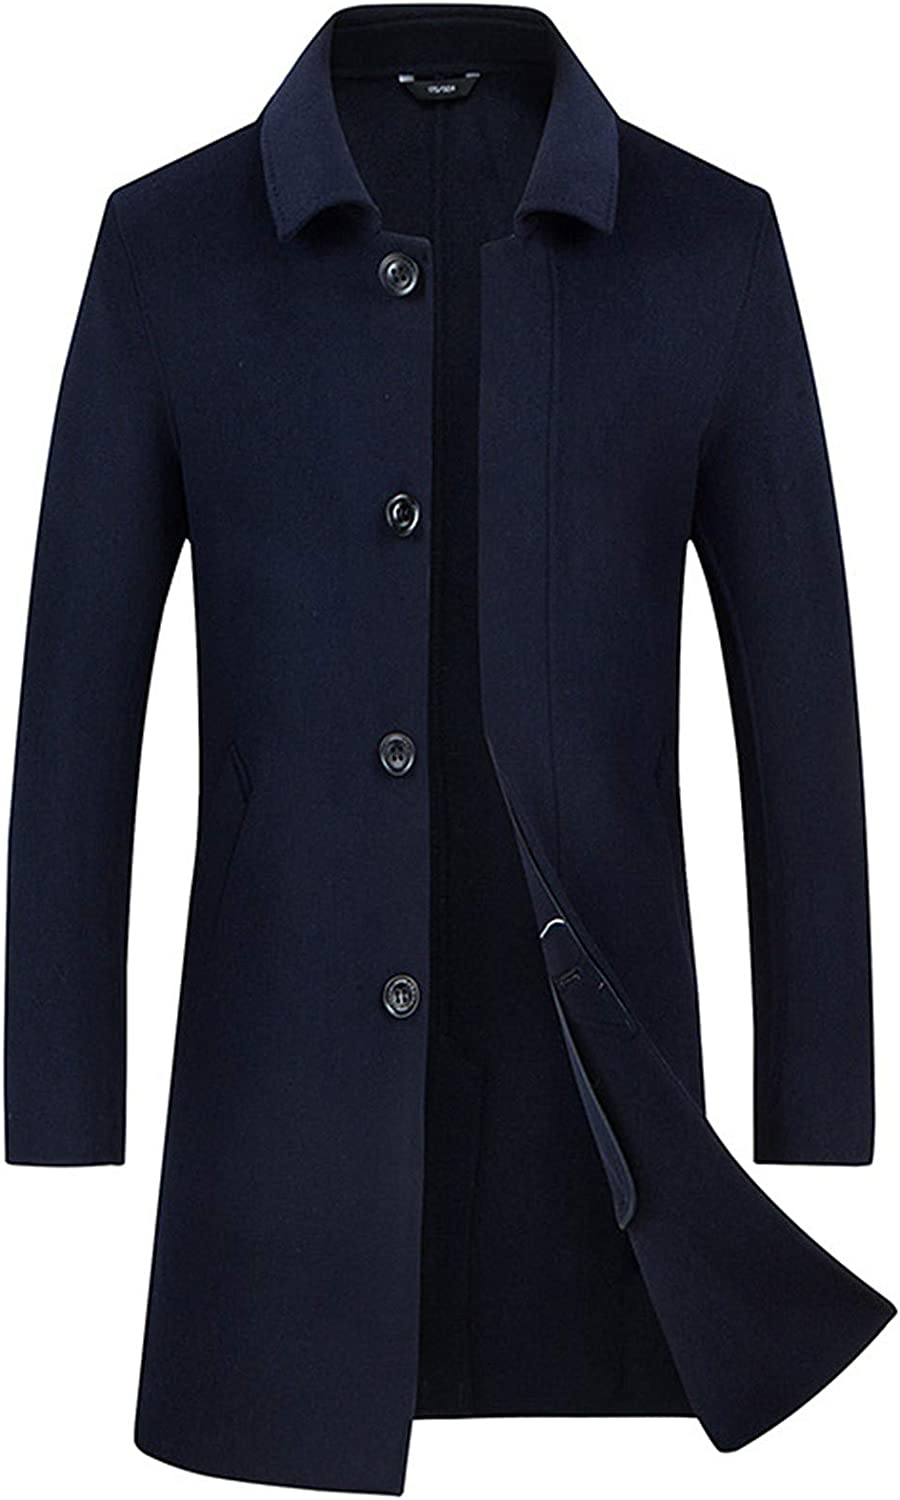 EverNight Wool Blend Top Coat,Lapel Slim Fit Stylish Trench Overcoat,Winter Casual Business Top Jacket,Blue,XXXL